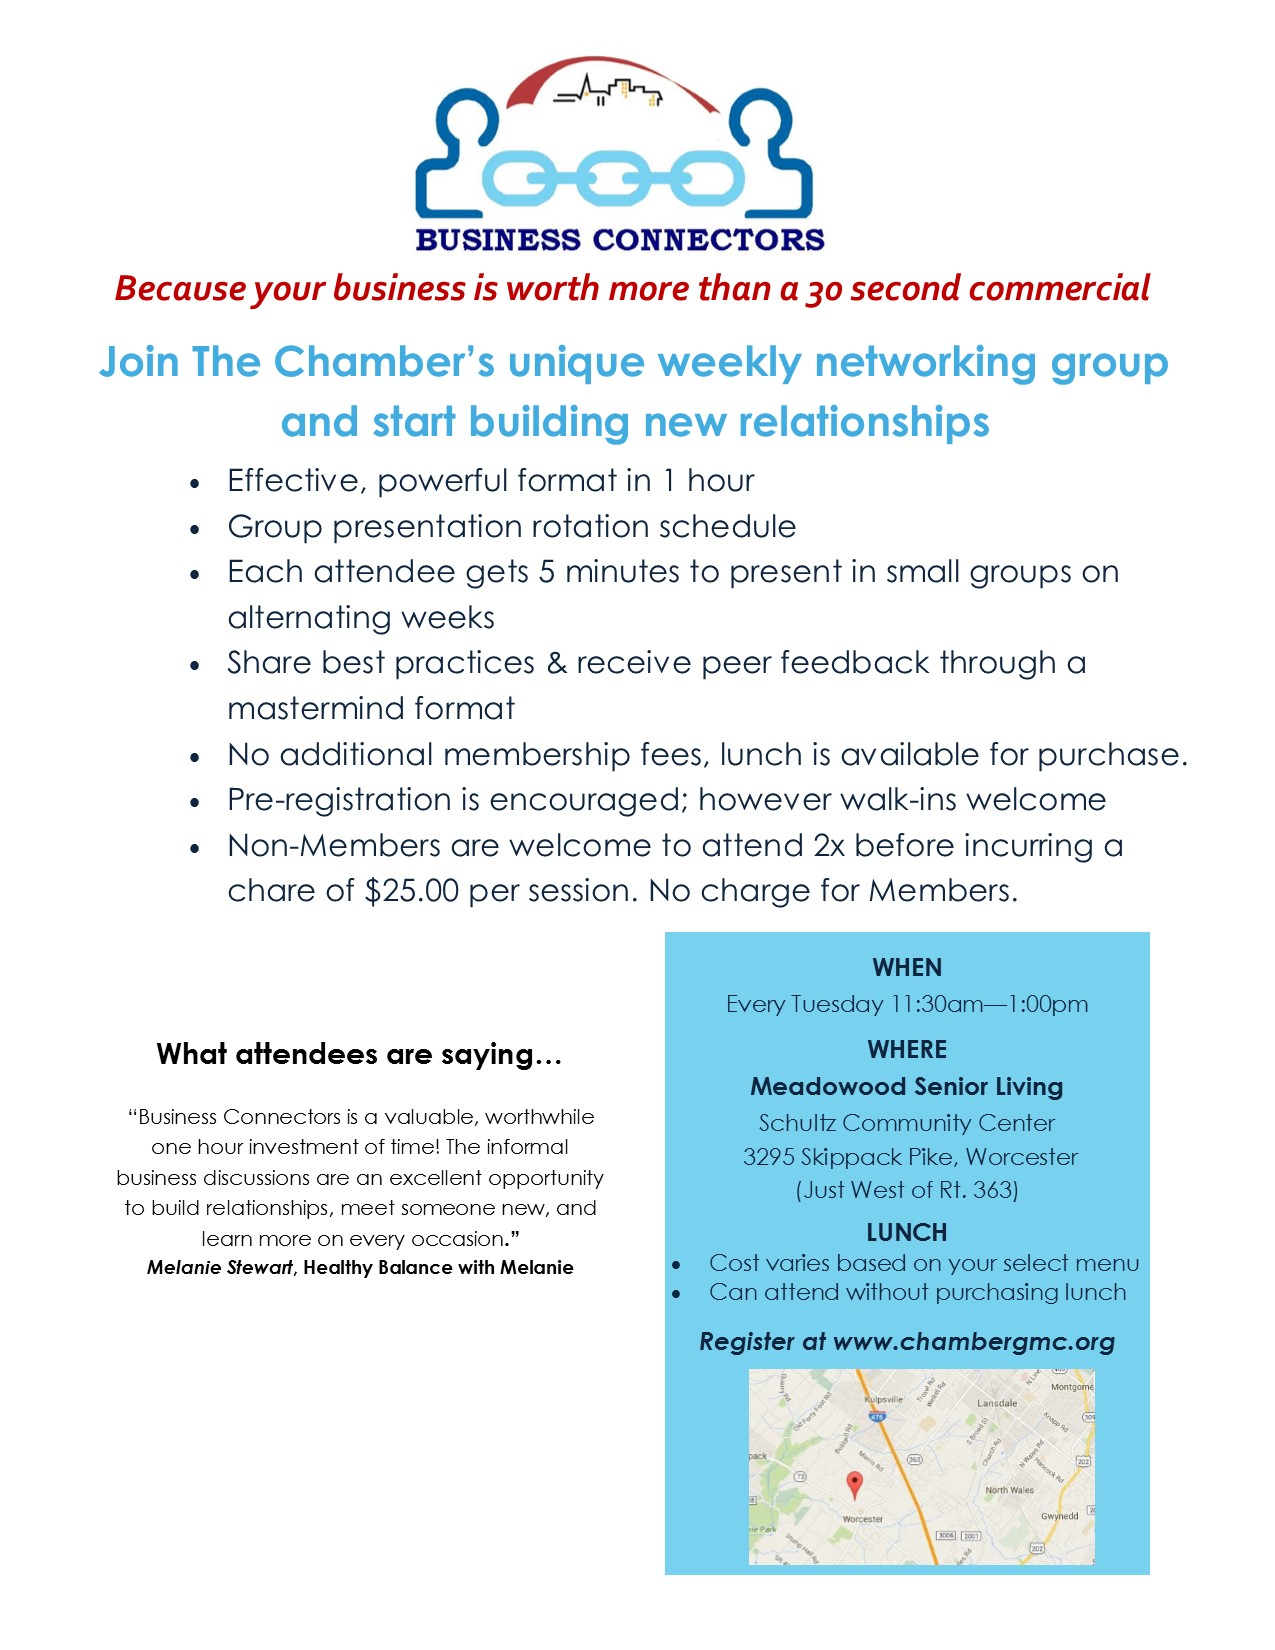 business connectors weekly networking group lansdale worcester skippack blue bell north wales gwynedd